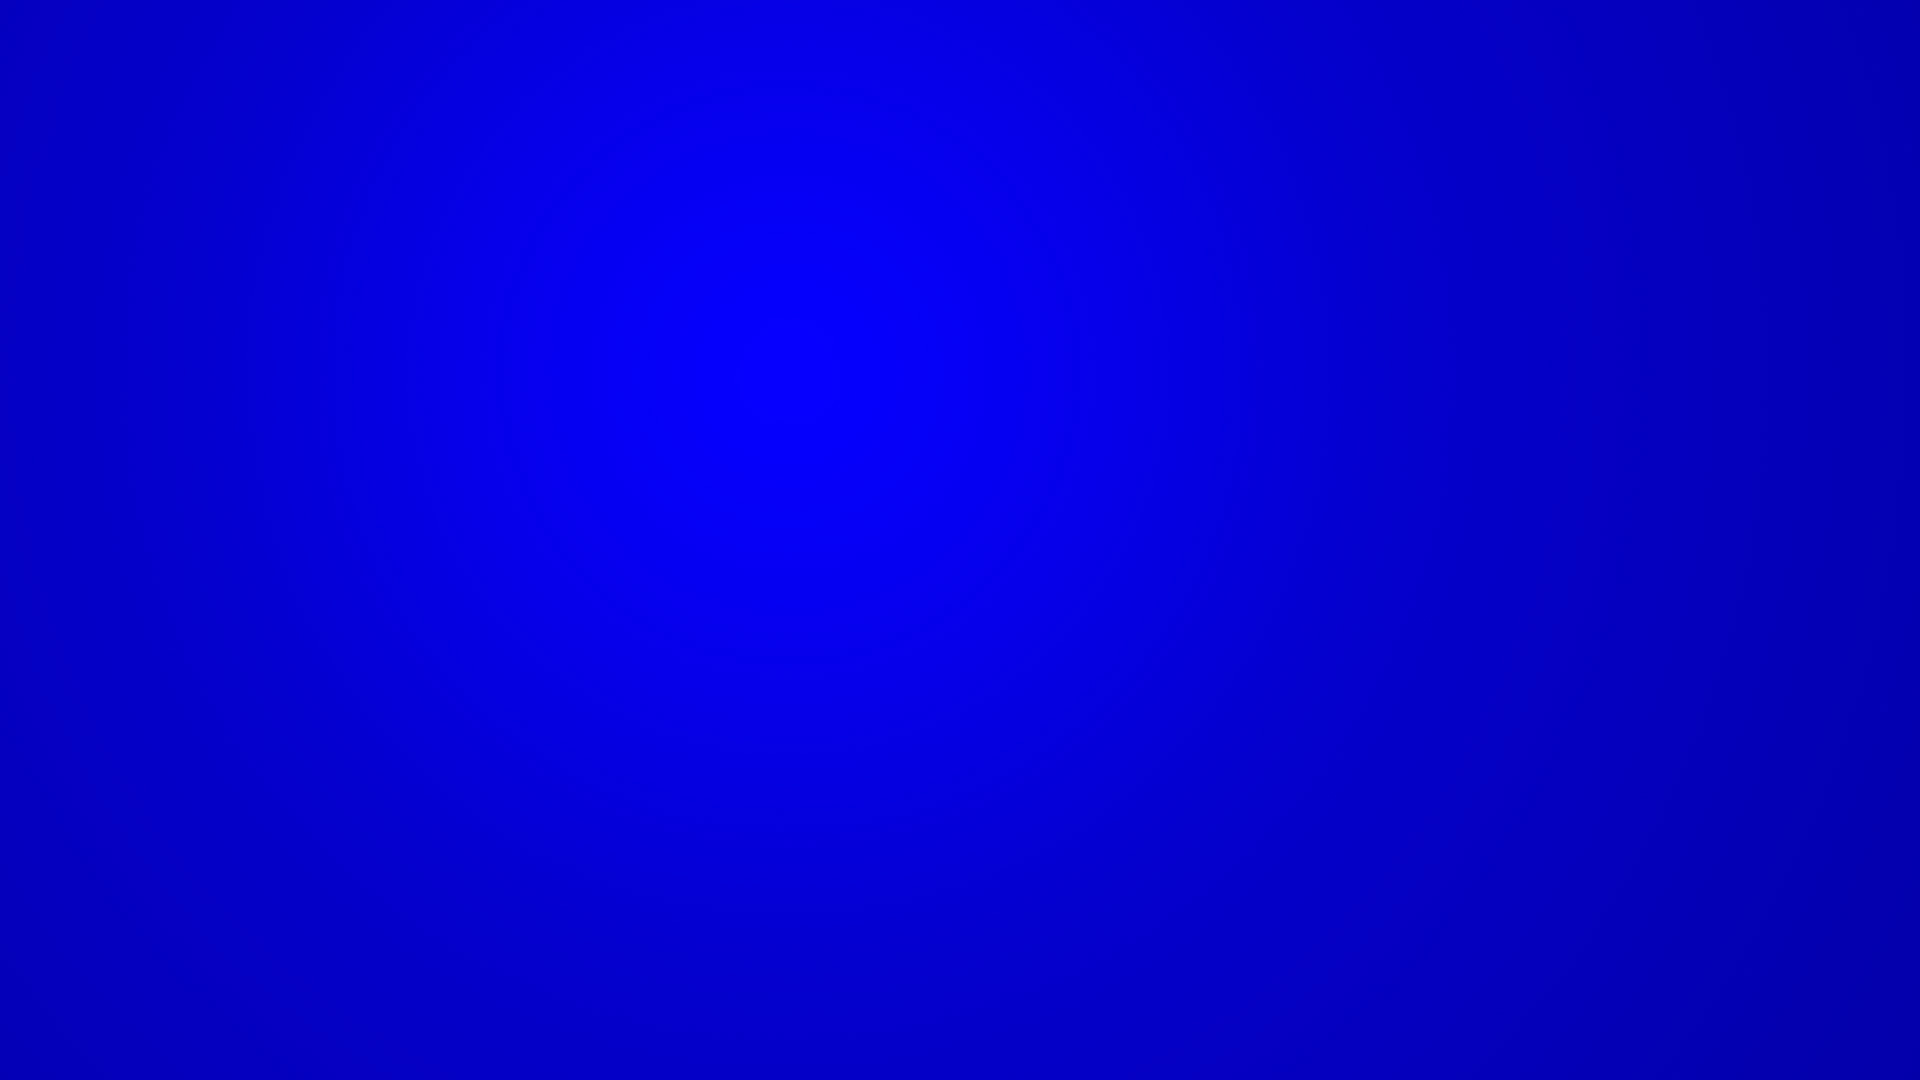 royal-blue-Presentation-Gradient-Background